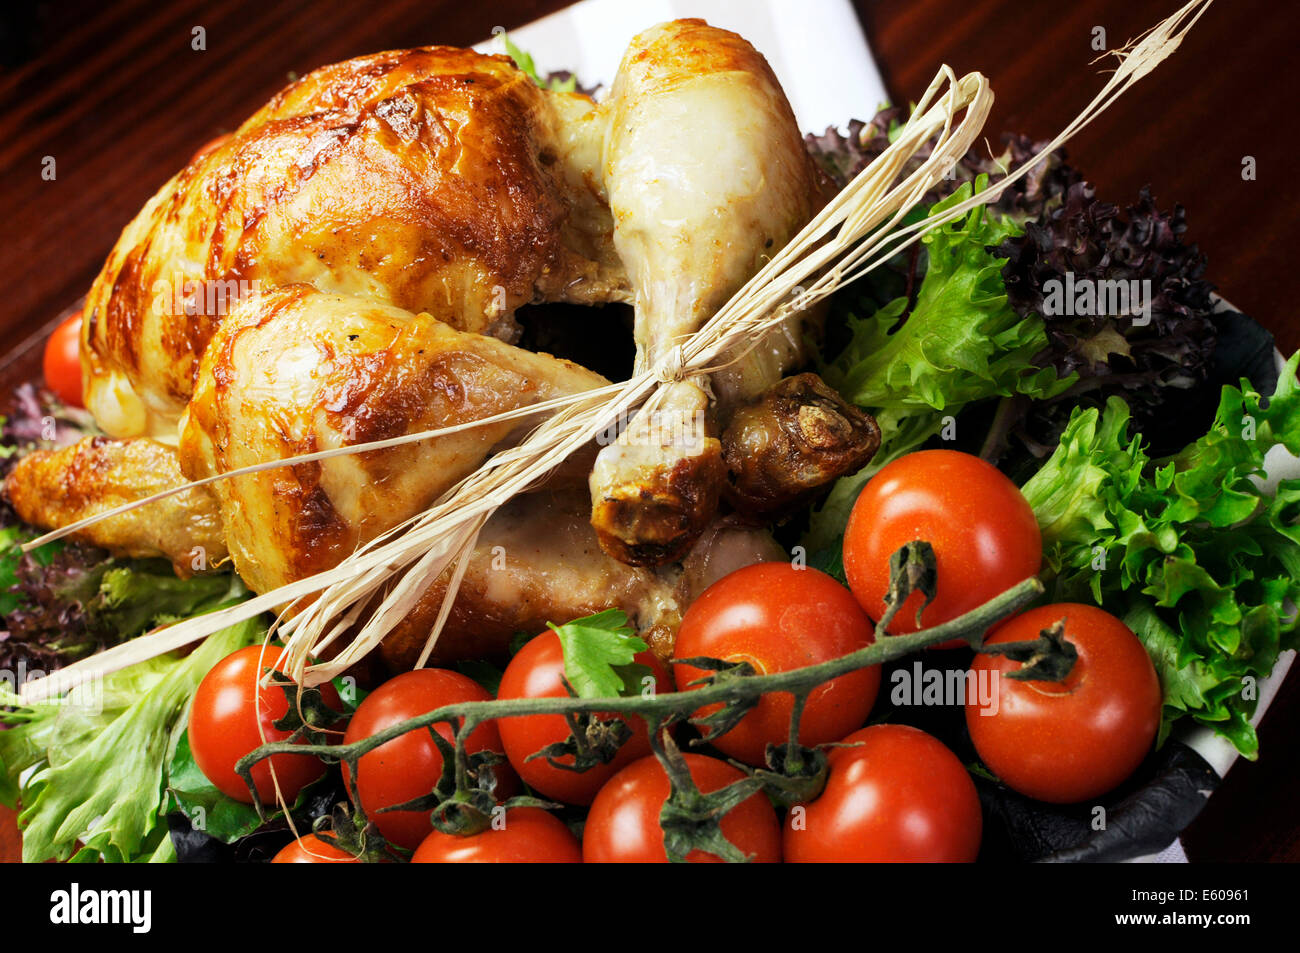 Platter of delicious roast chicken turkey with salad greens and red tomatoes on the vine. - Stock Image